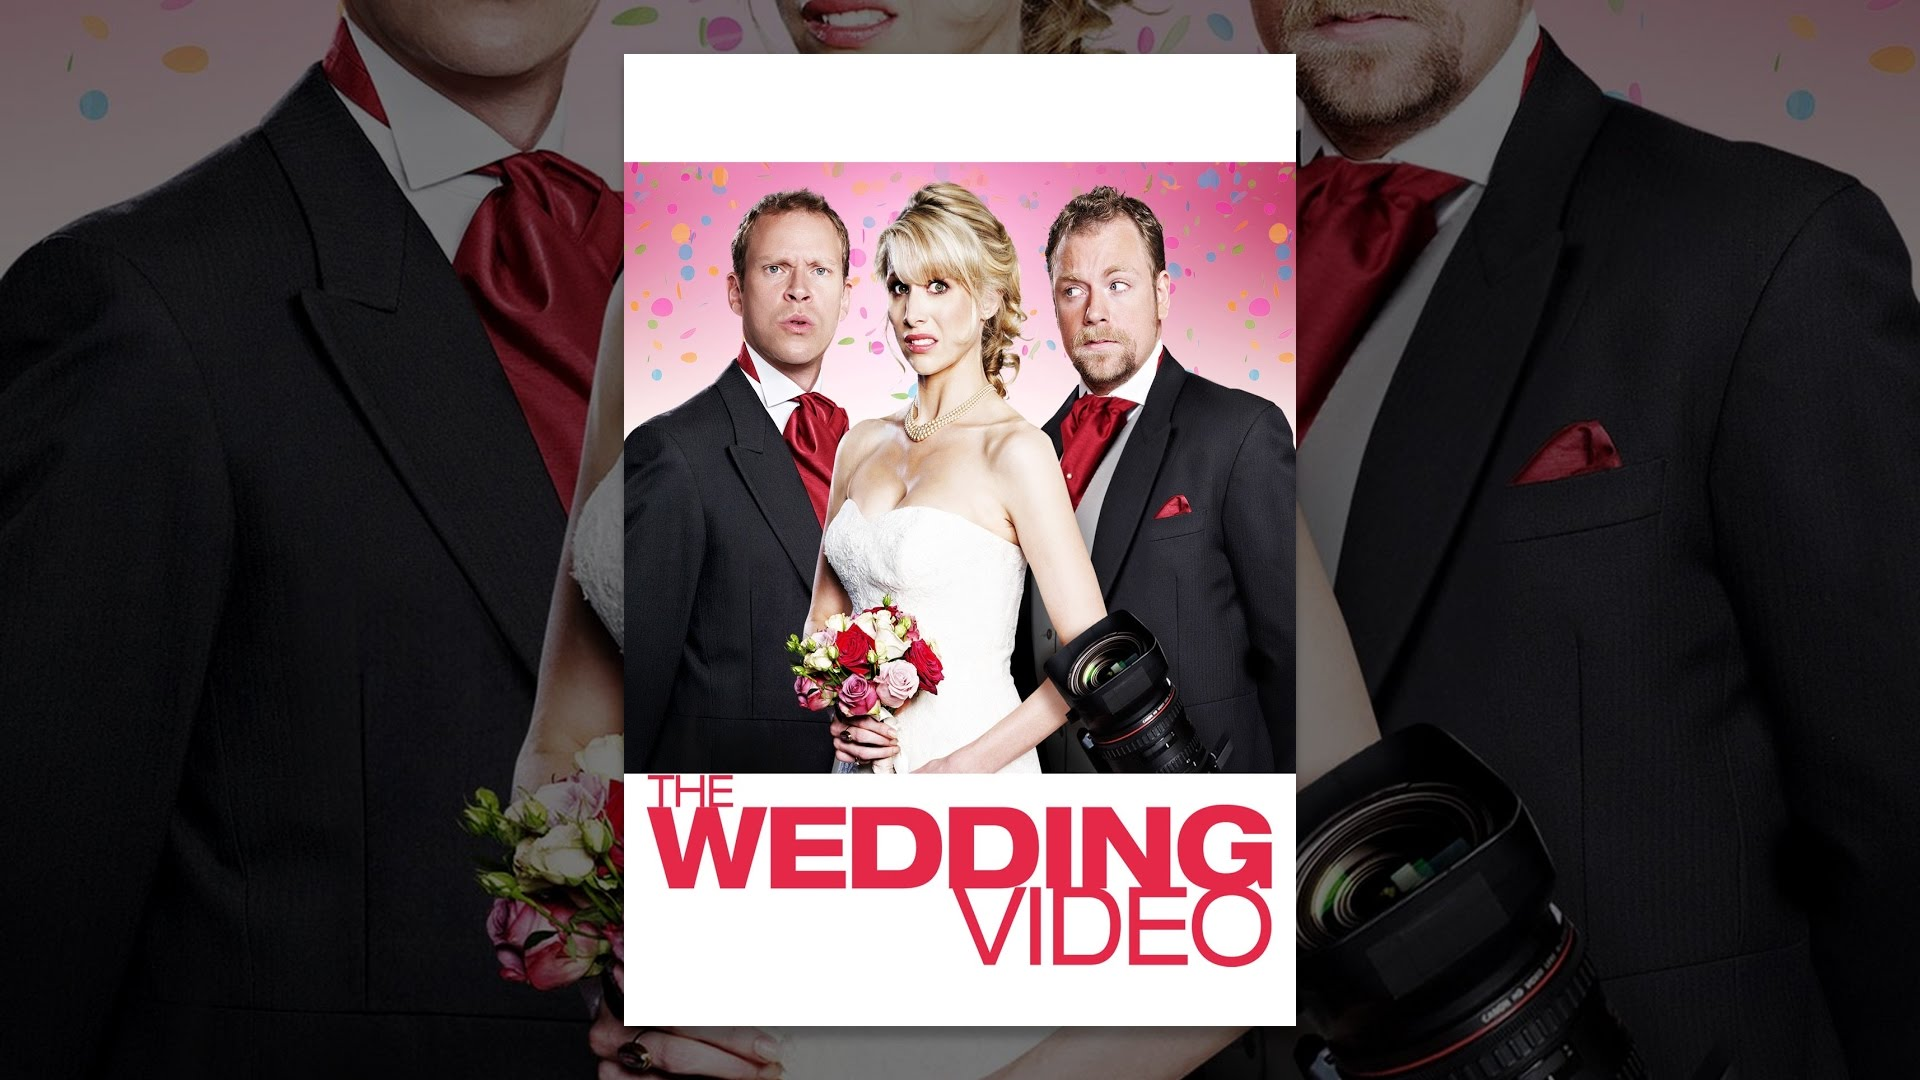 The Wedding Video You